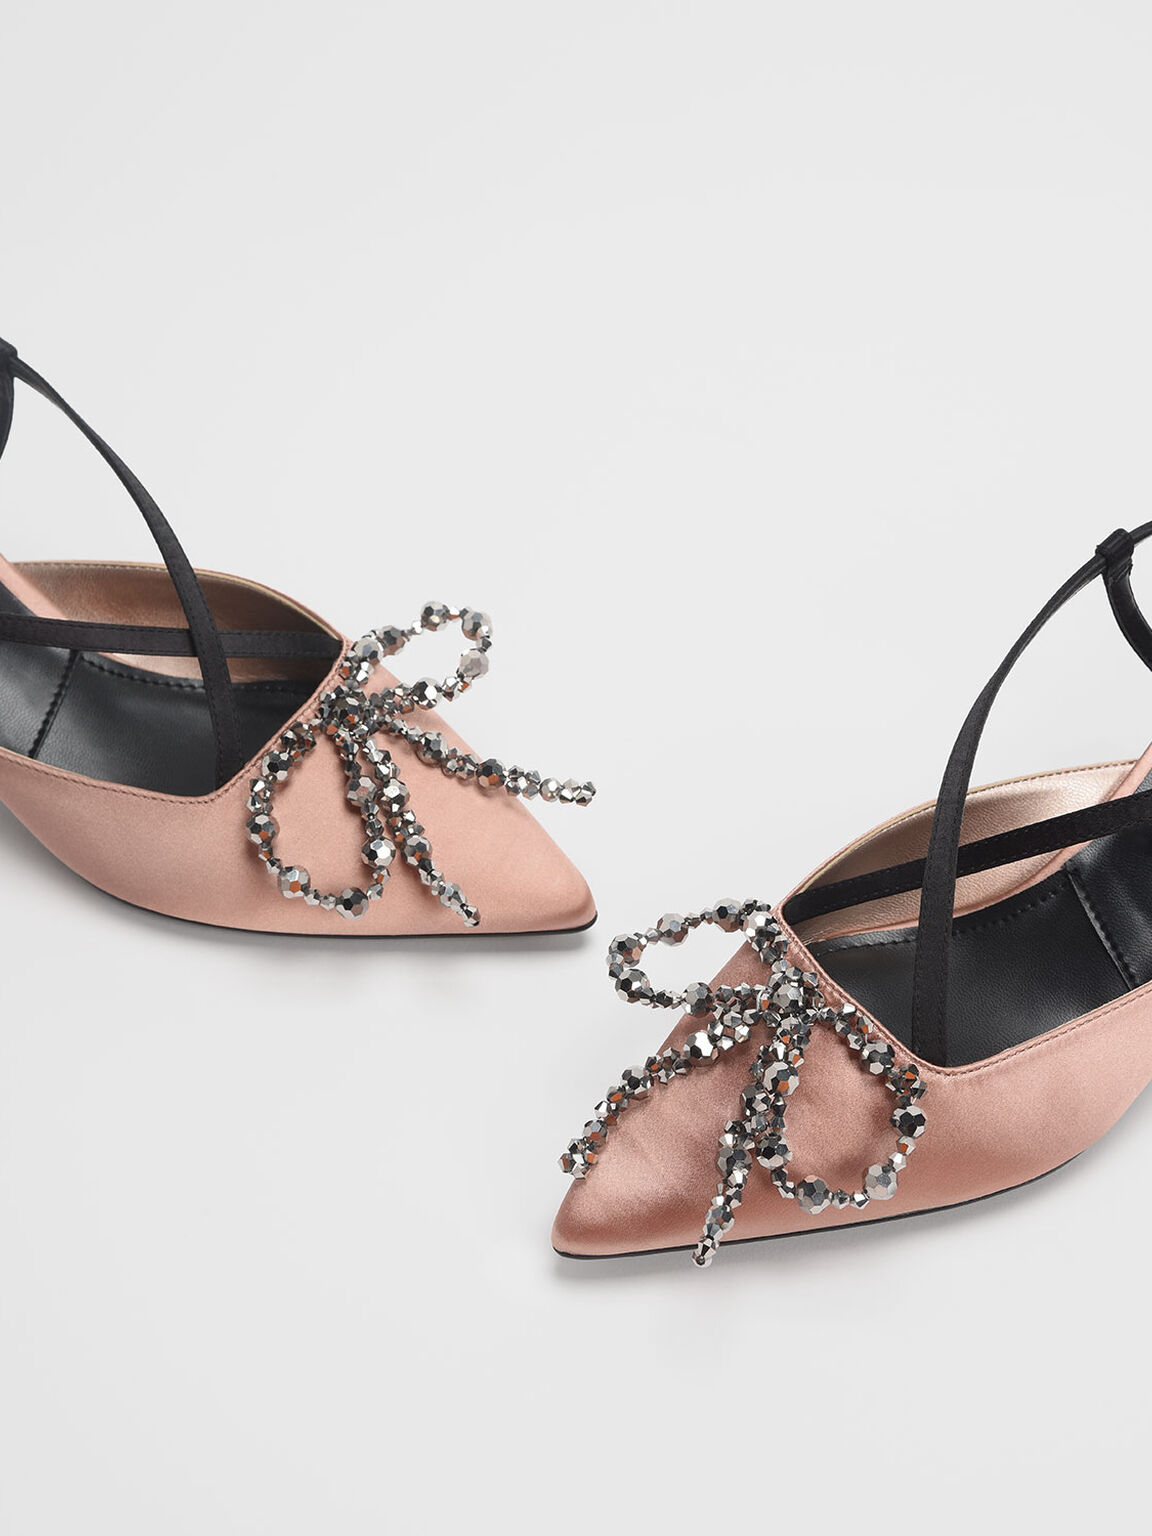 Beaded Bow Satin & Leather Slingback Heels, Blush, hi-res